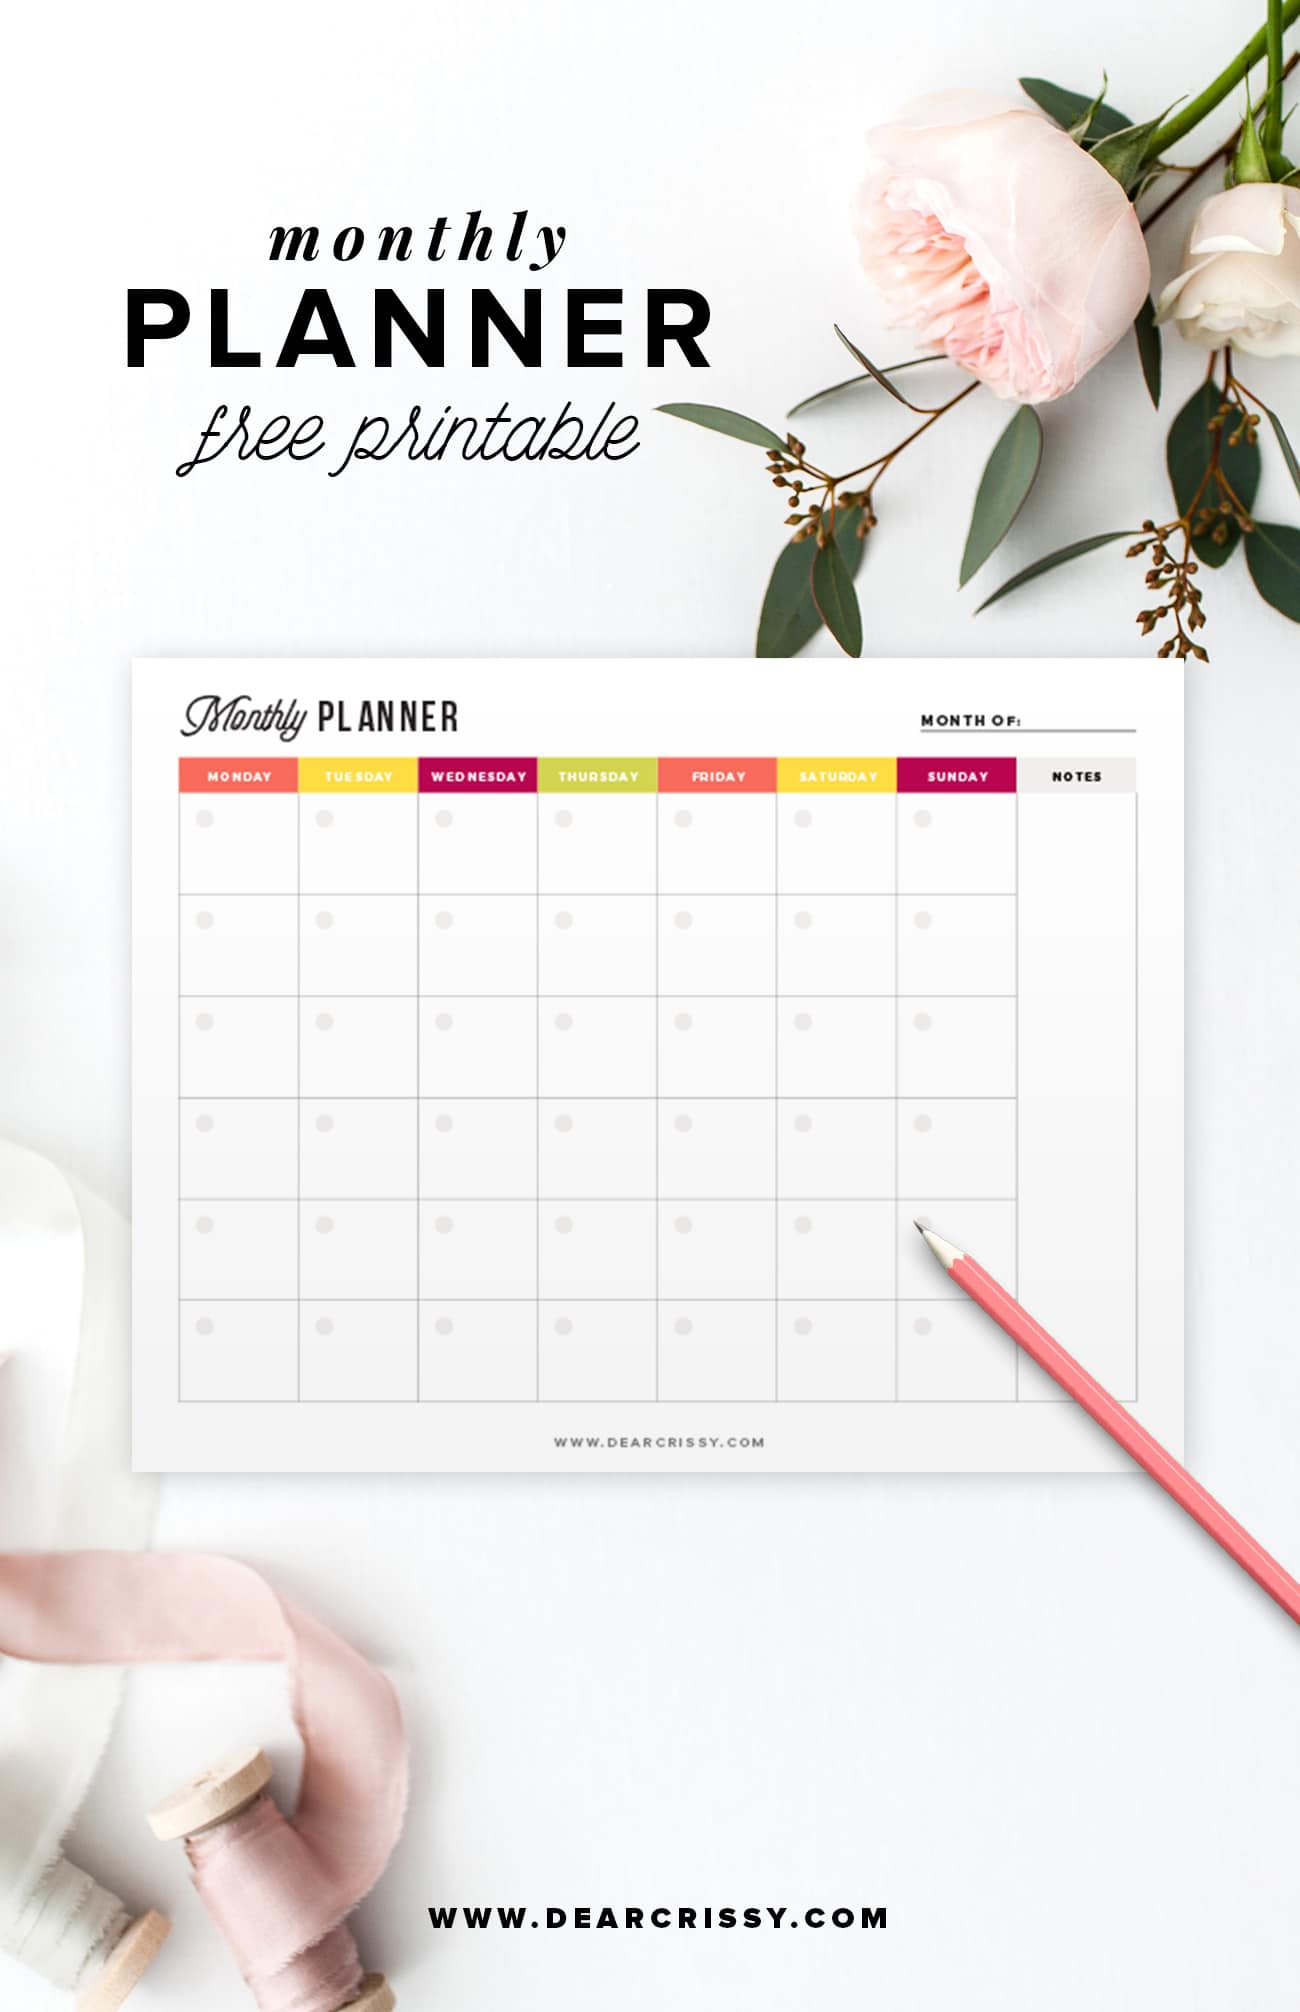 Organization Calendar Free : Free printable monthly planner start planning your month today